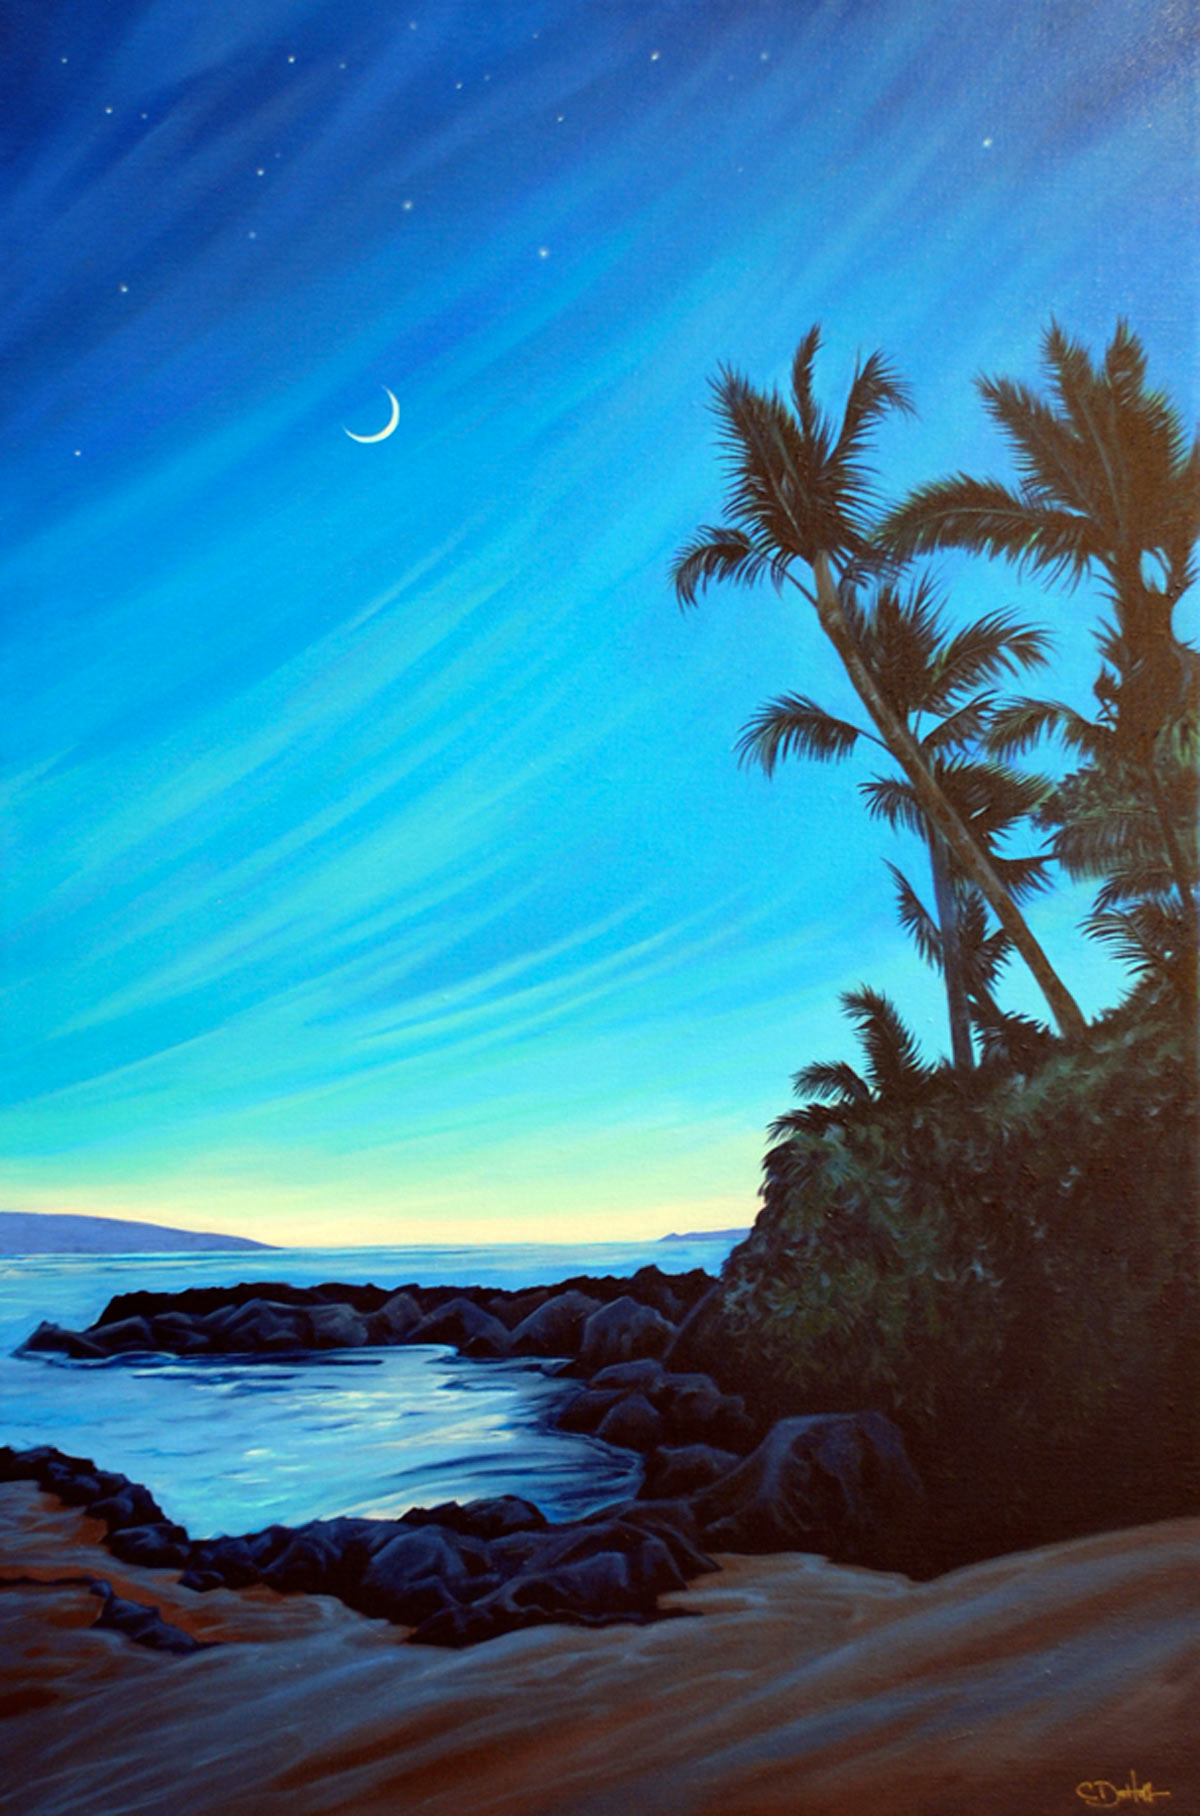 christina-dehoff-makena-moonrise